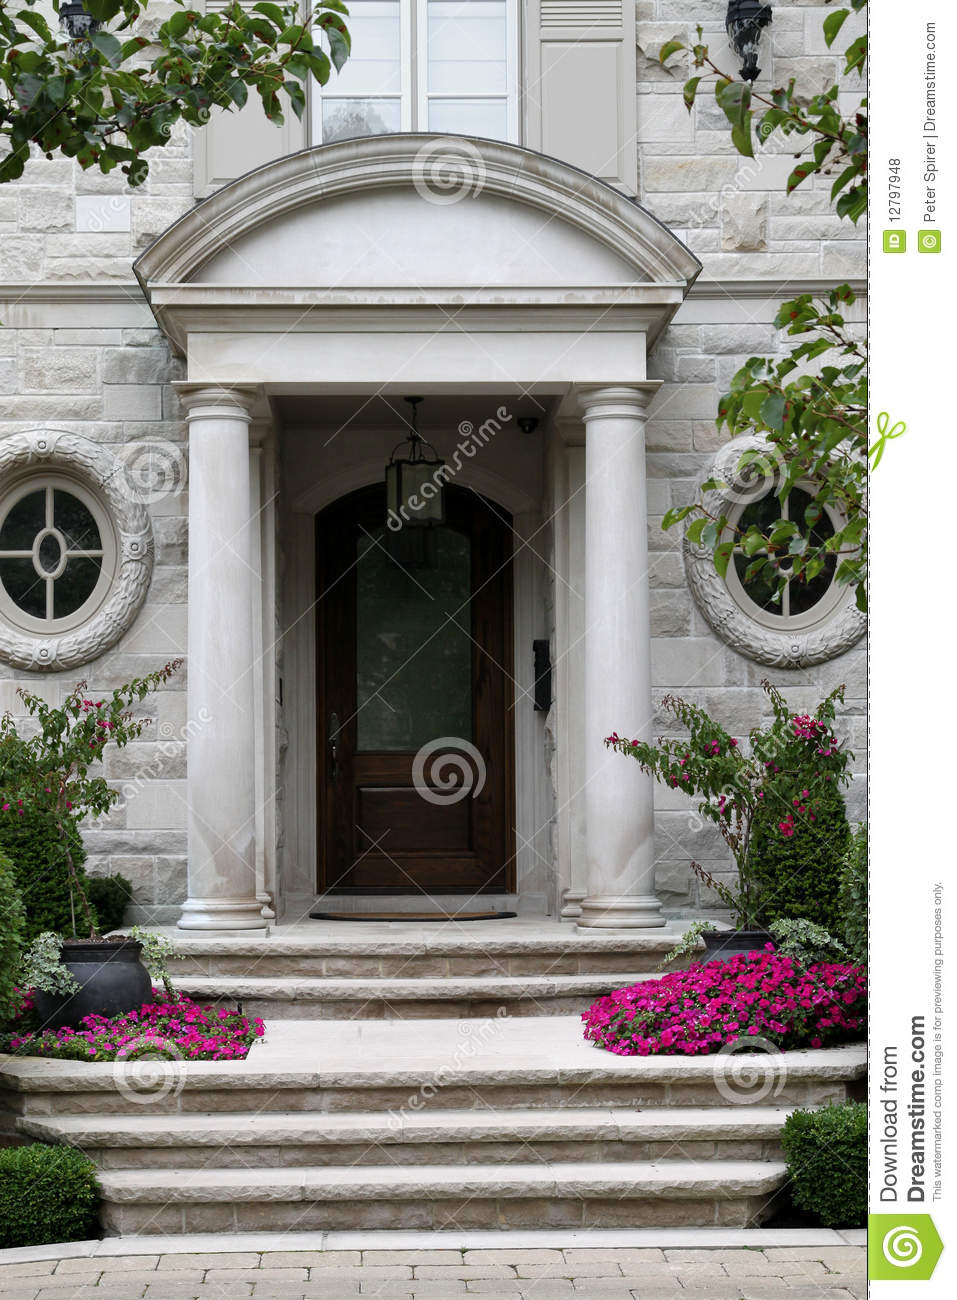 Elegant front door with flowers stock photo image 12797948 for Elegant front doors